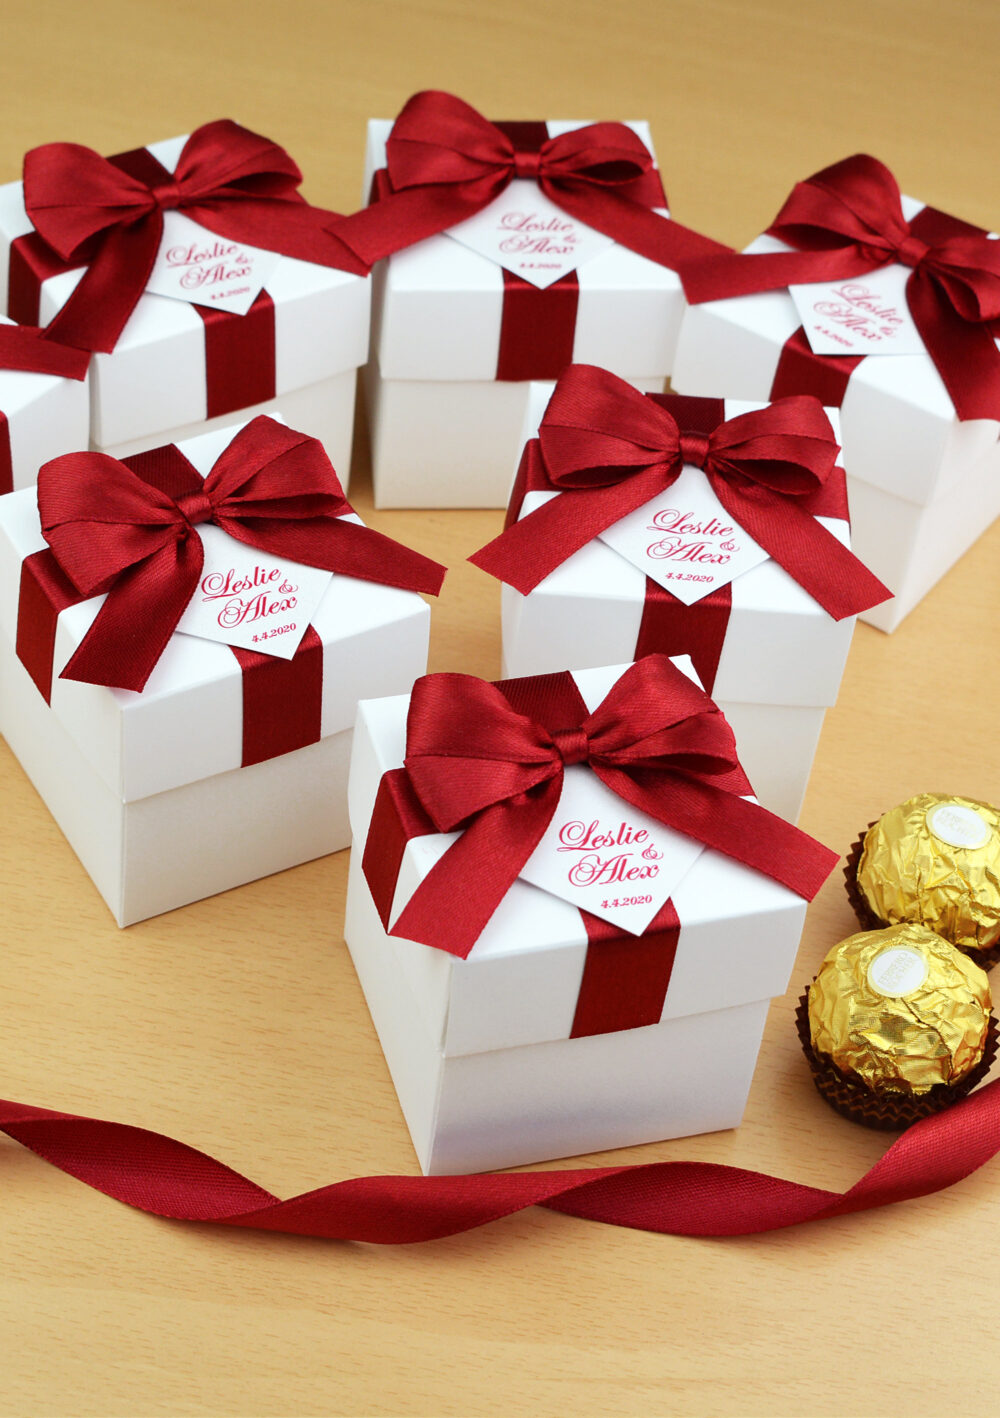 Personalized Wedding Favor Boxes With Red Burgundy Satin Ribbon Bow & Your Names, Elegant Bonbonniere, Custom Candy Box For Guests